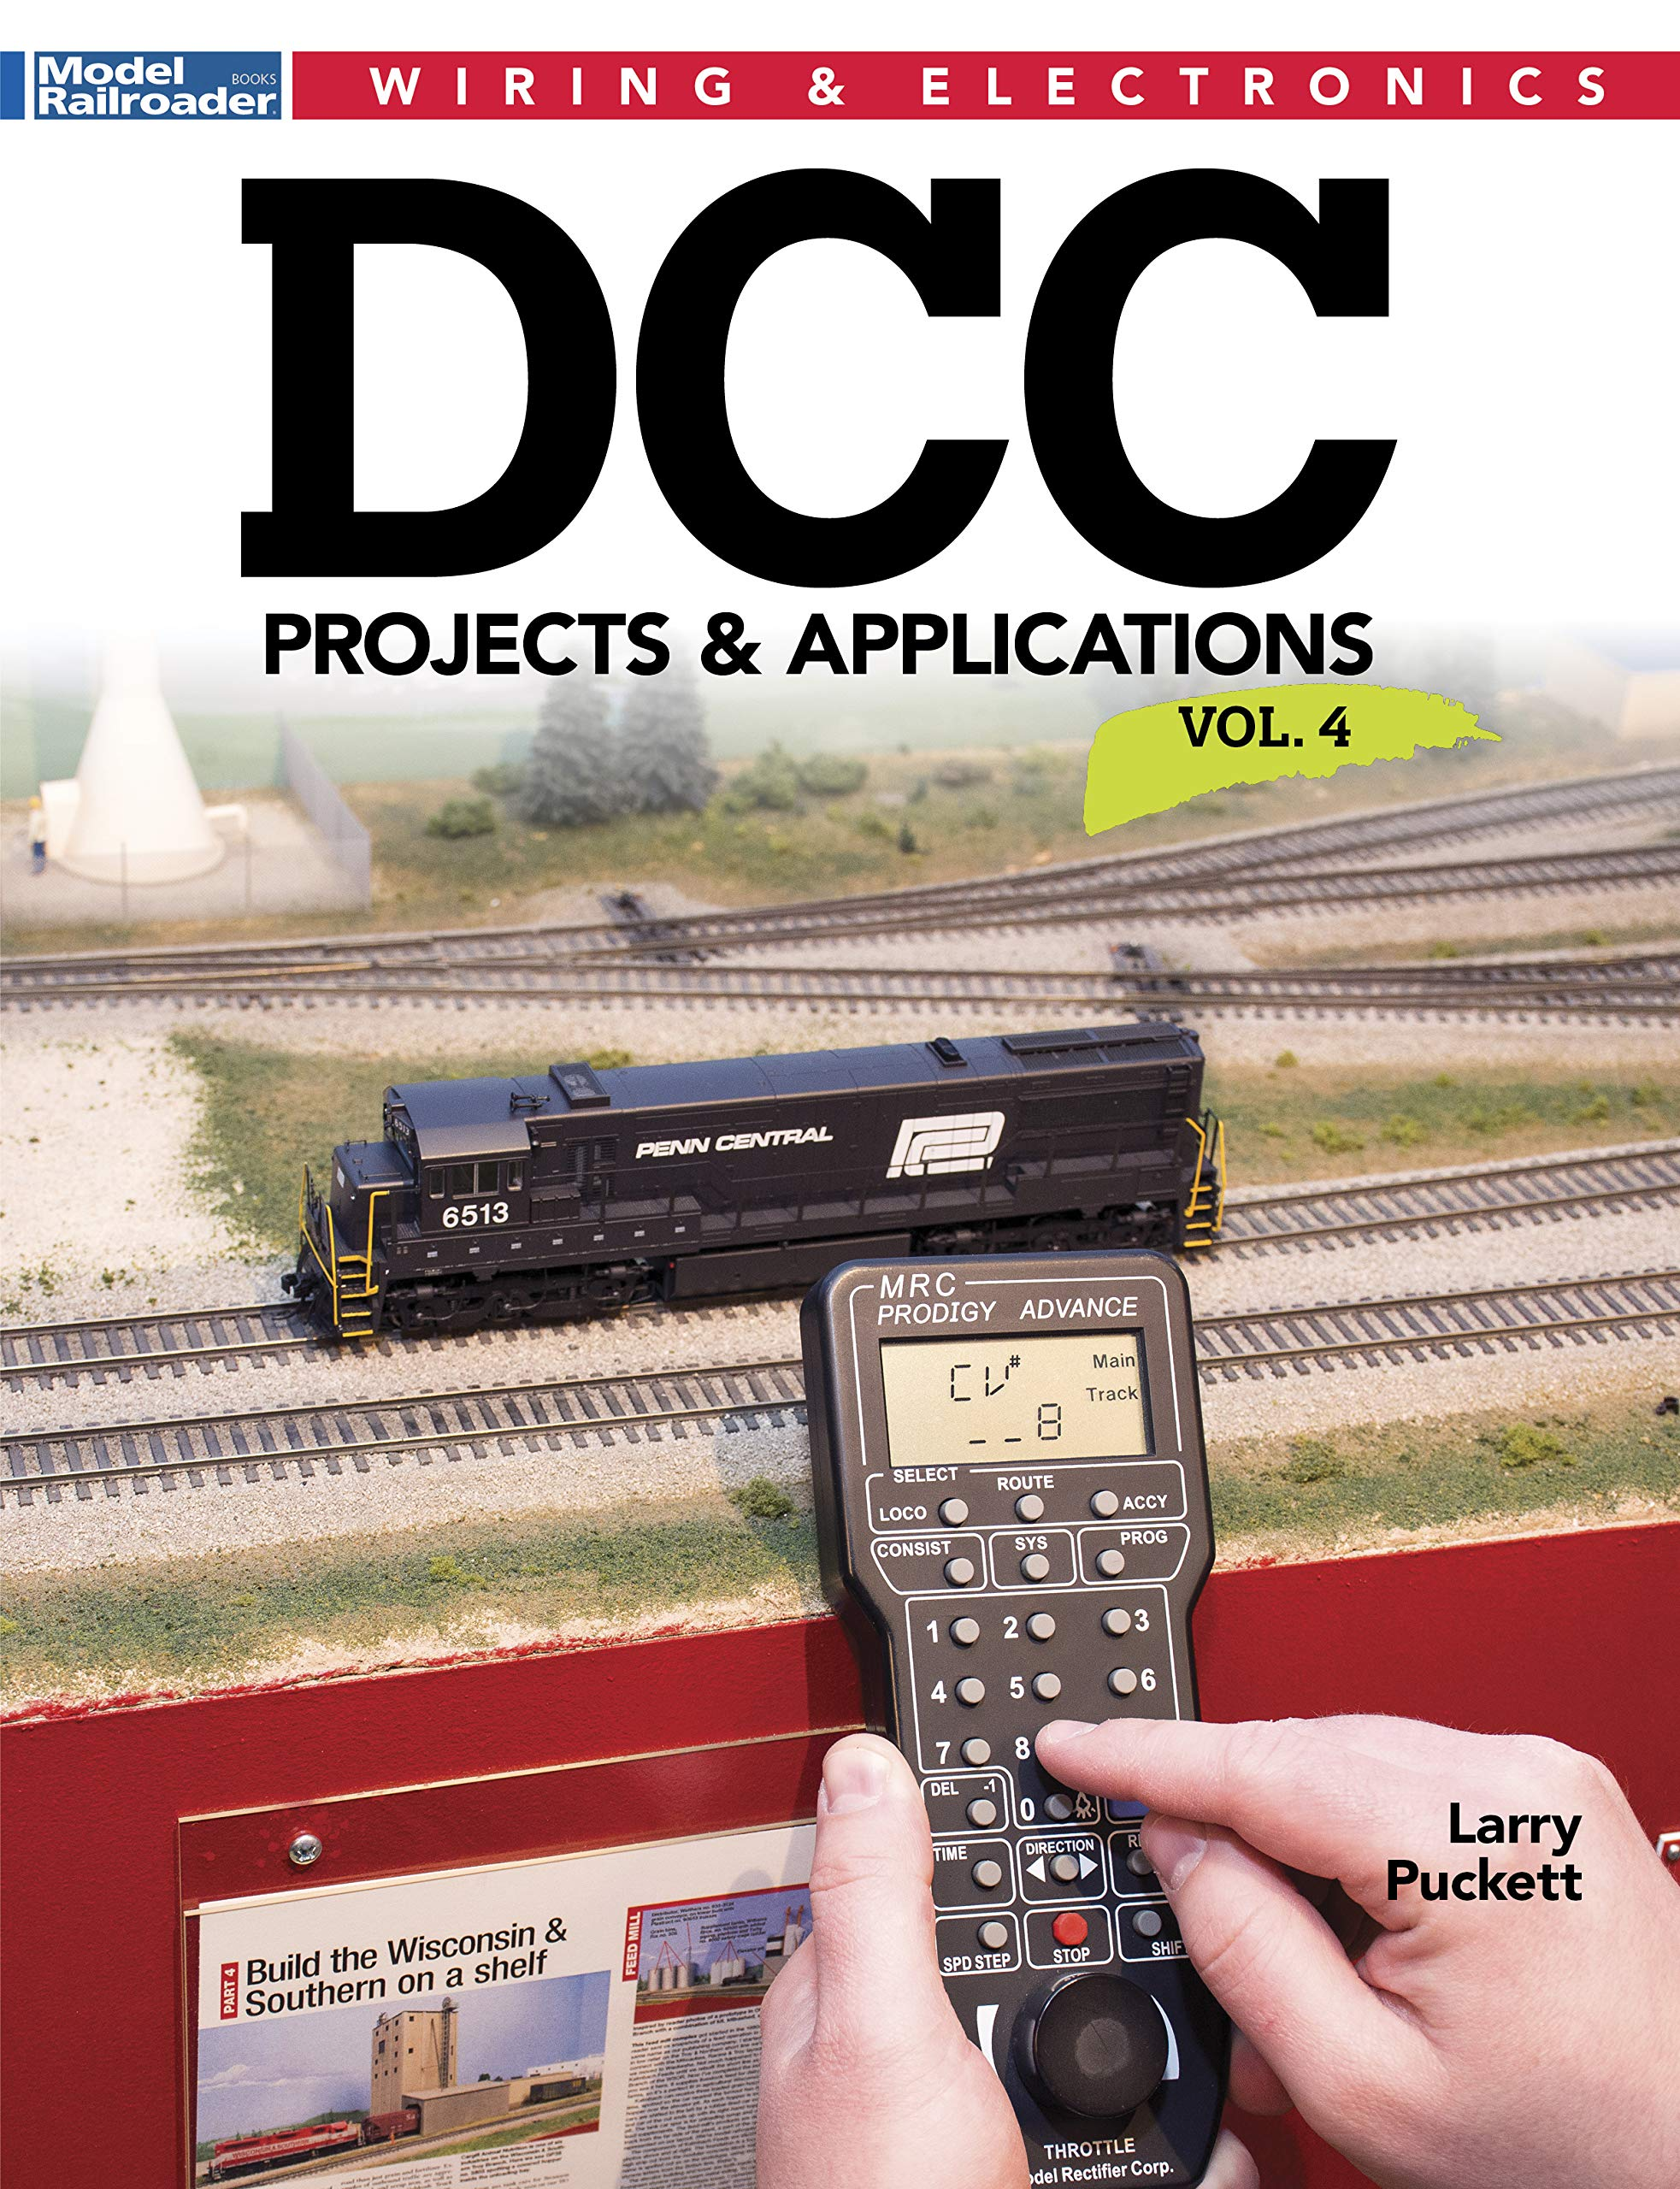 Image OfDCC Projects & Applications V4 (Model Railroader Wiring & Electronics)